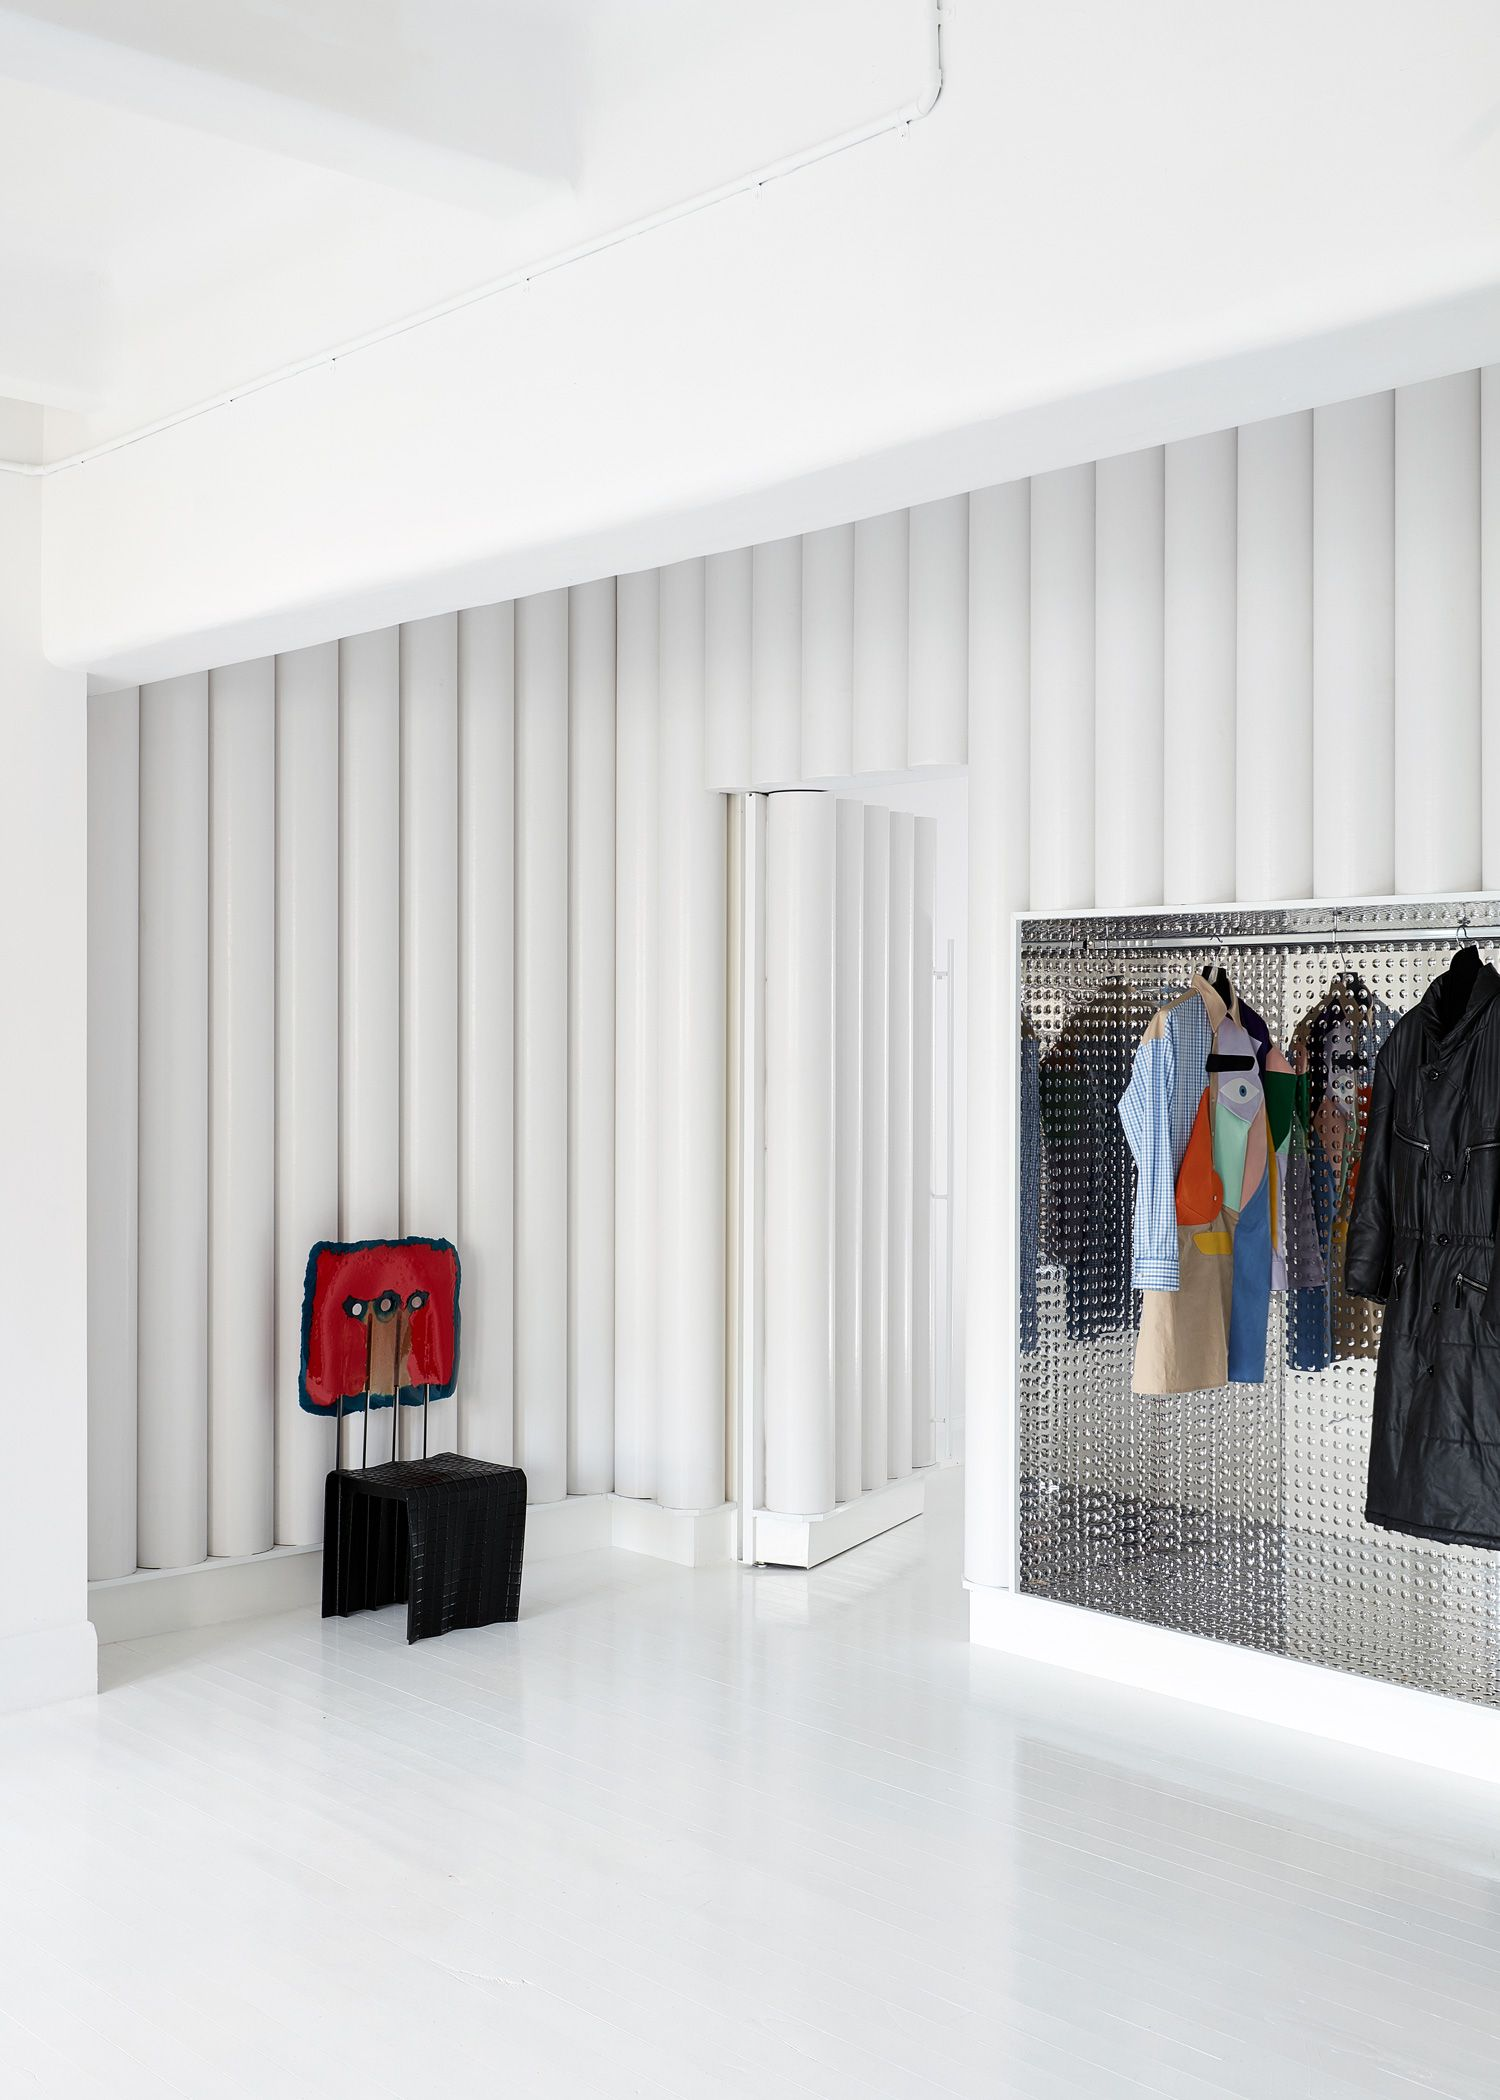 Dot comme collection store in melbourne by sibling architecture yellowtrace